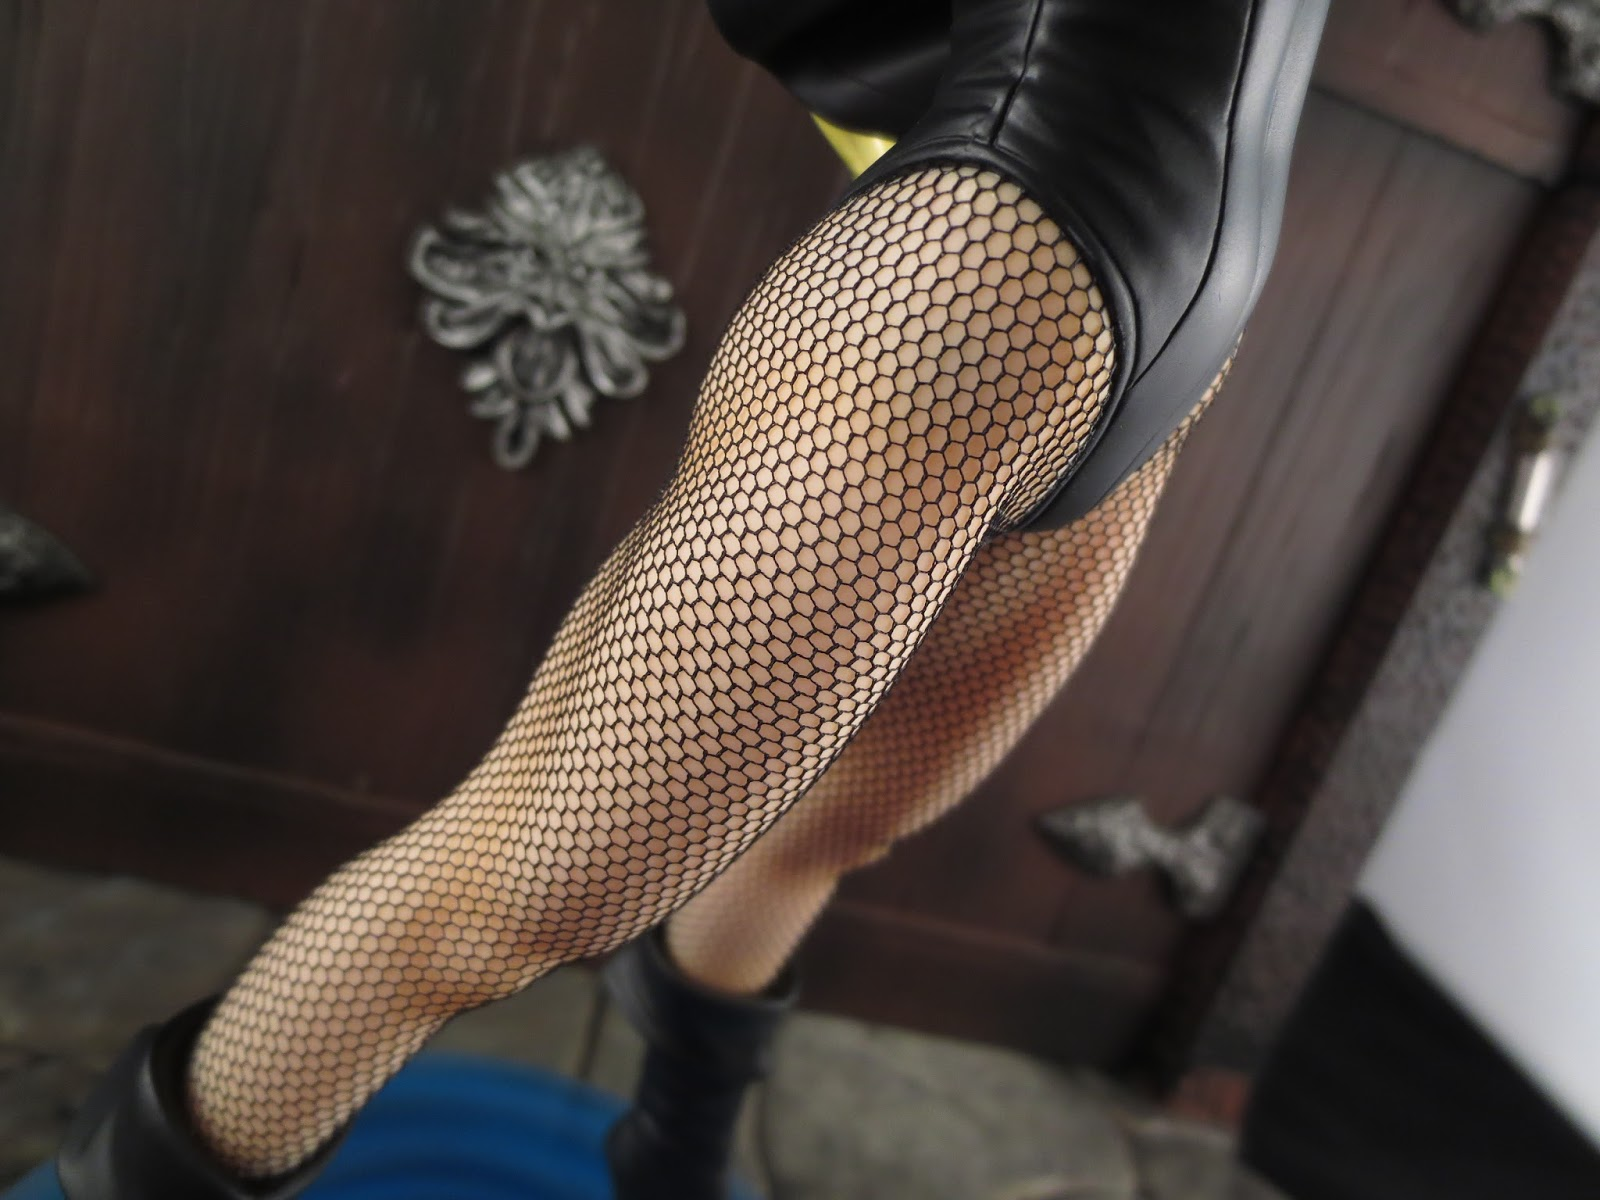 These fishnets were really expensive but totally worth it jo